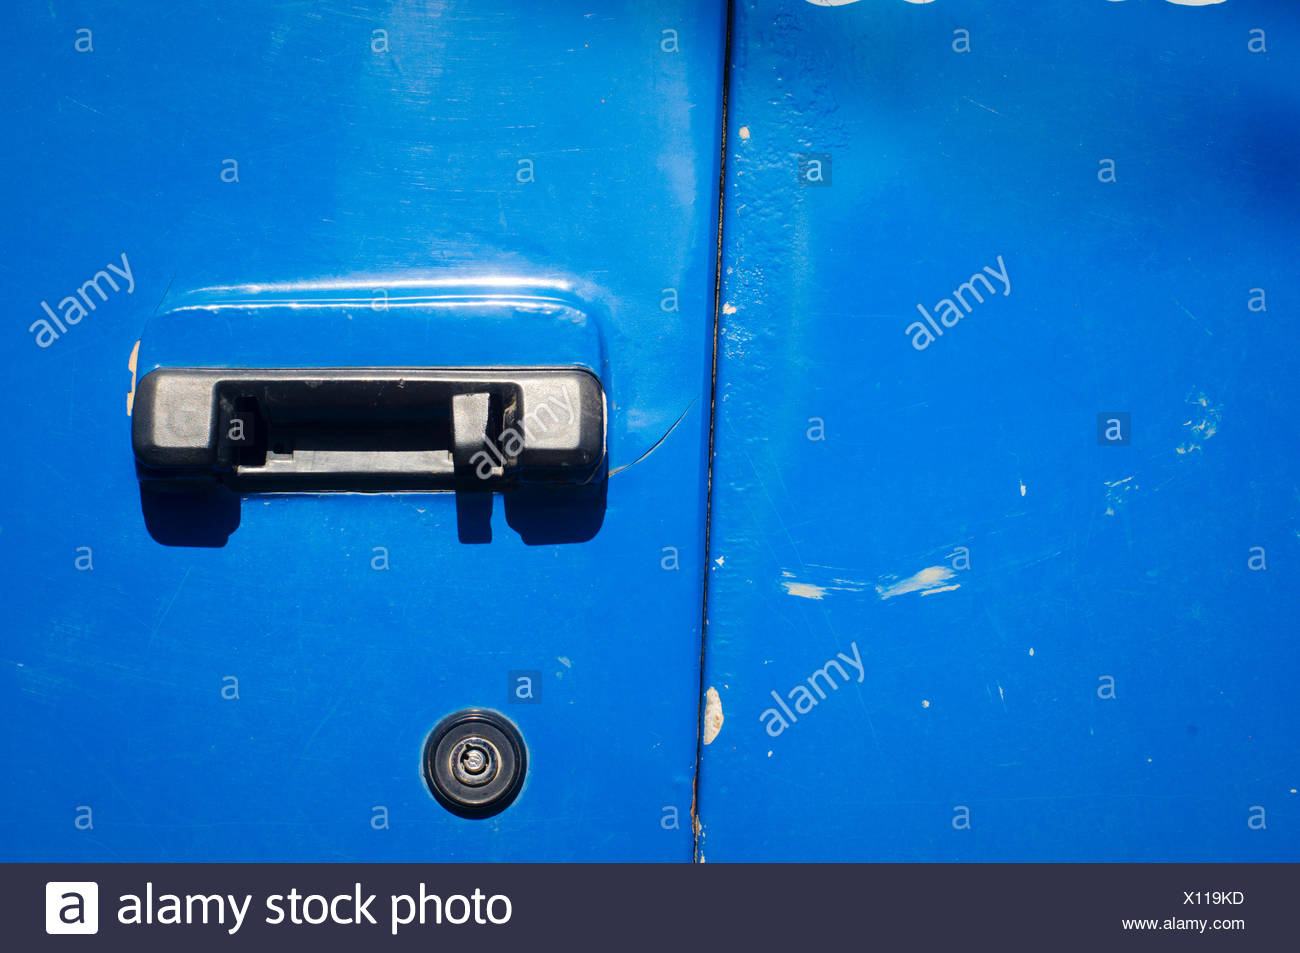 Door Lock Latch Key Stock Photos & Door Lock Latch Key Stock